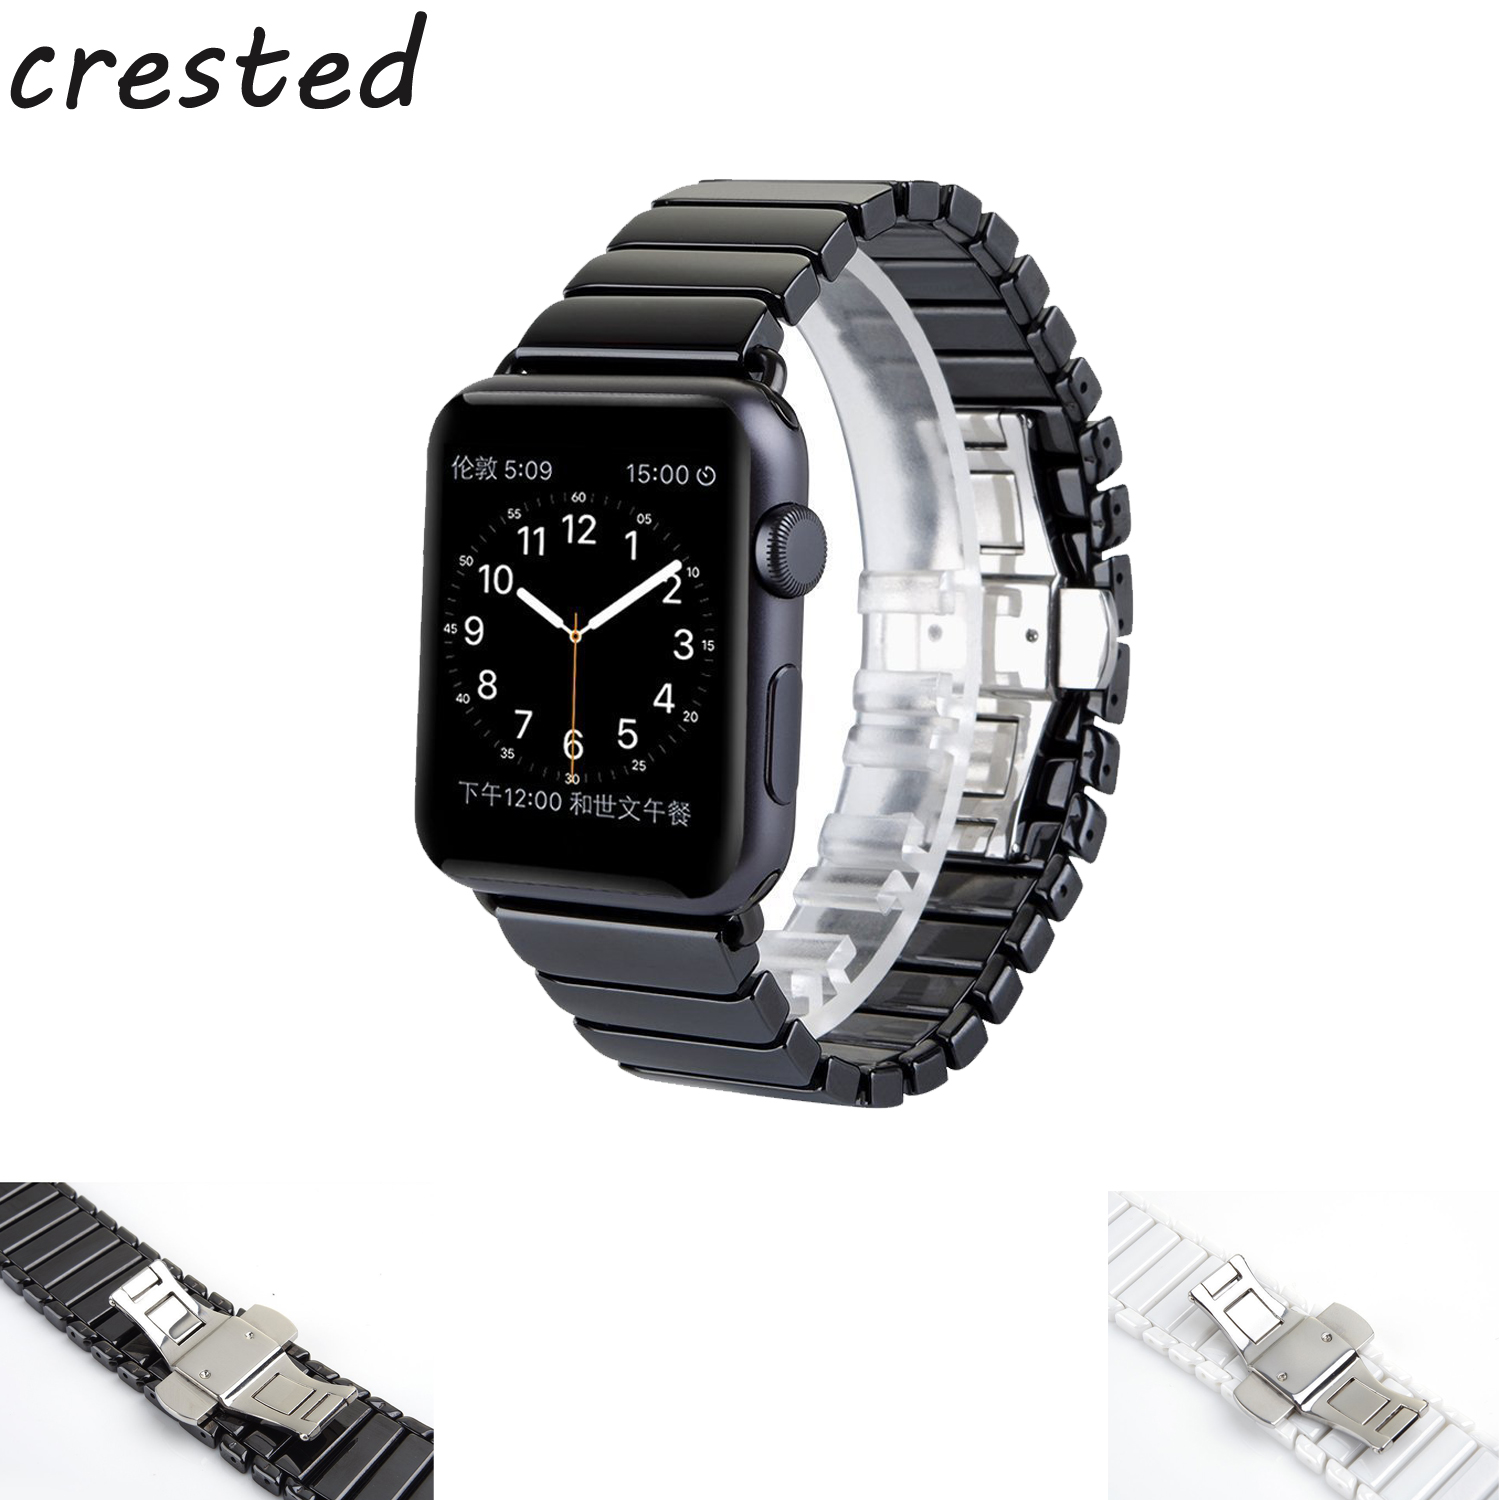 CRESTED Ceramic Watch Band for Apple Watch 42 mm/38 Link Bracelet Butterfly Buckle loop band strap for iwatch series 1/2/3 asrock h61m vg3 original used desktop motherboard z77 socket lga 1155 i3 i5 i7 ddr3 16g usb2 0 micro atx